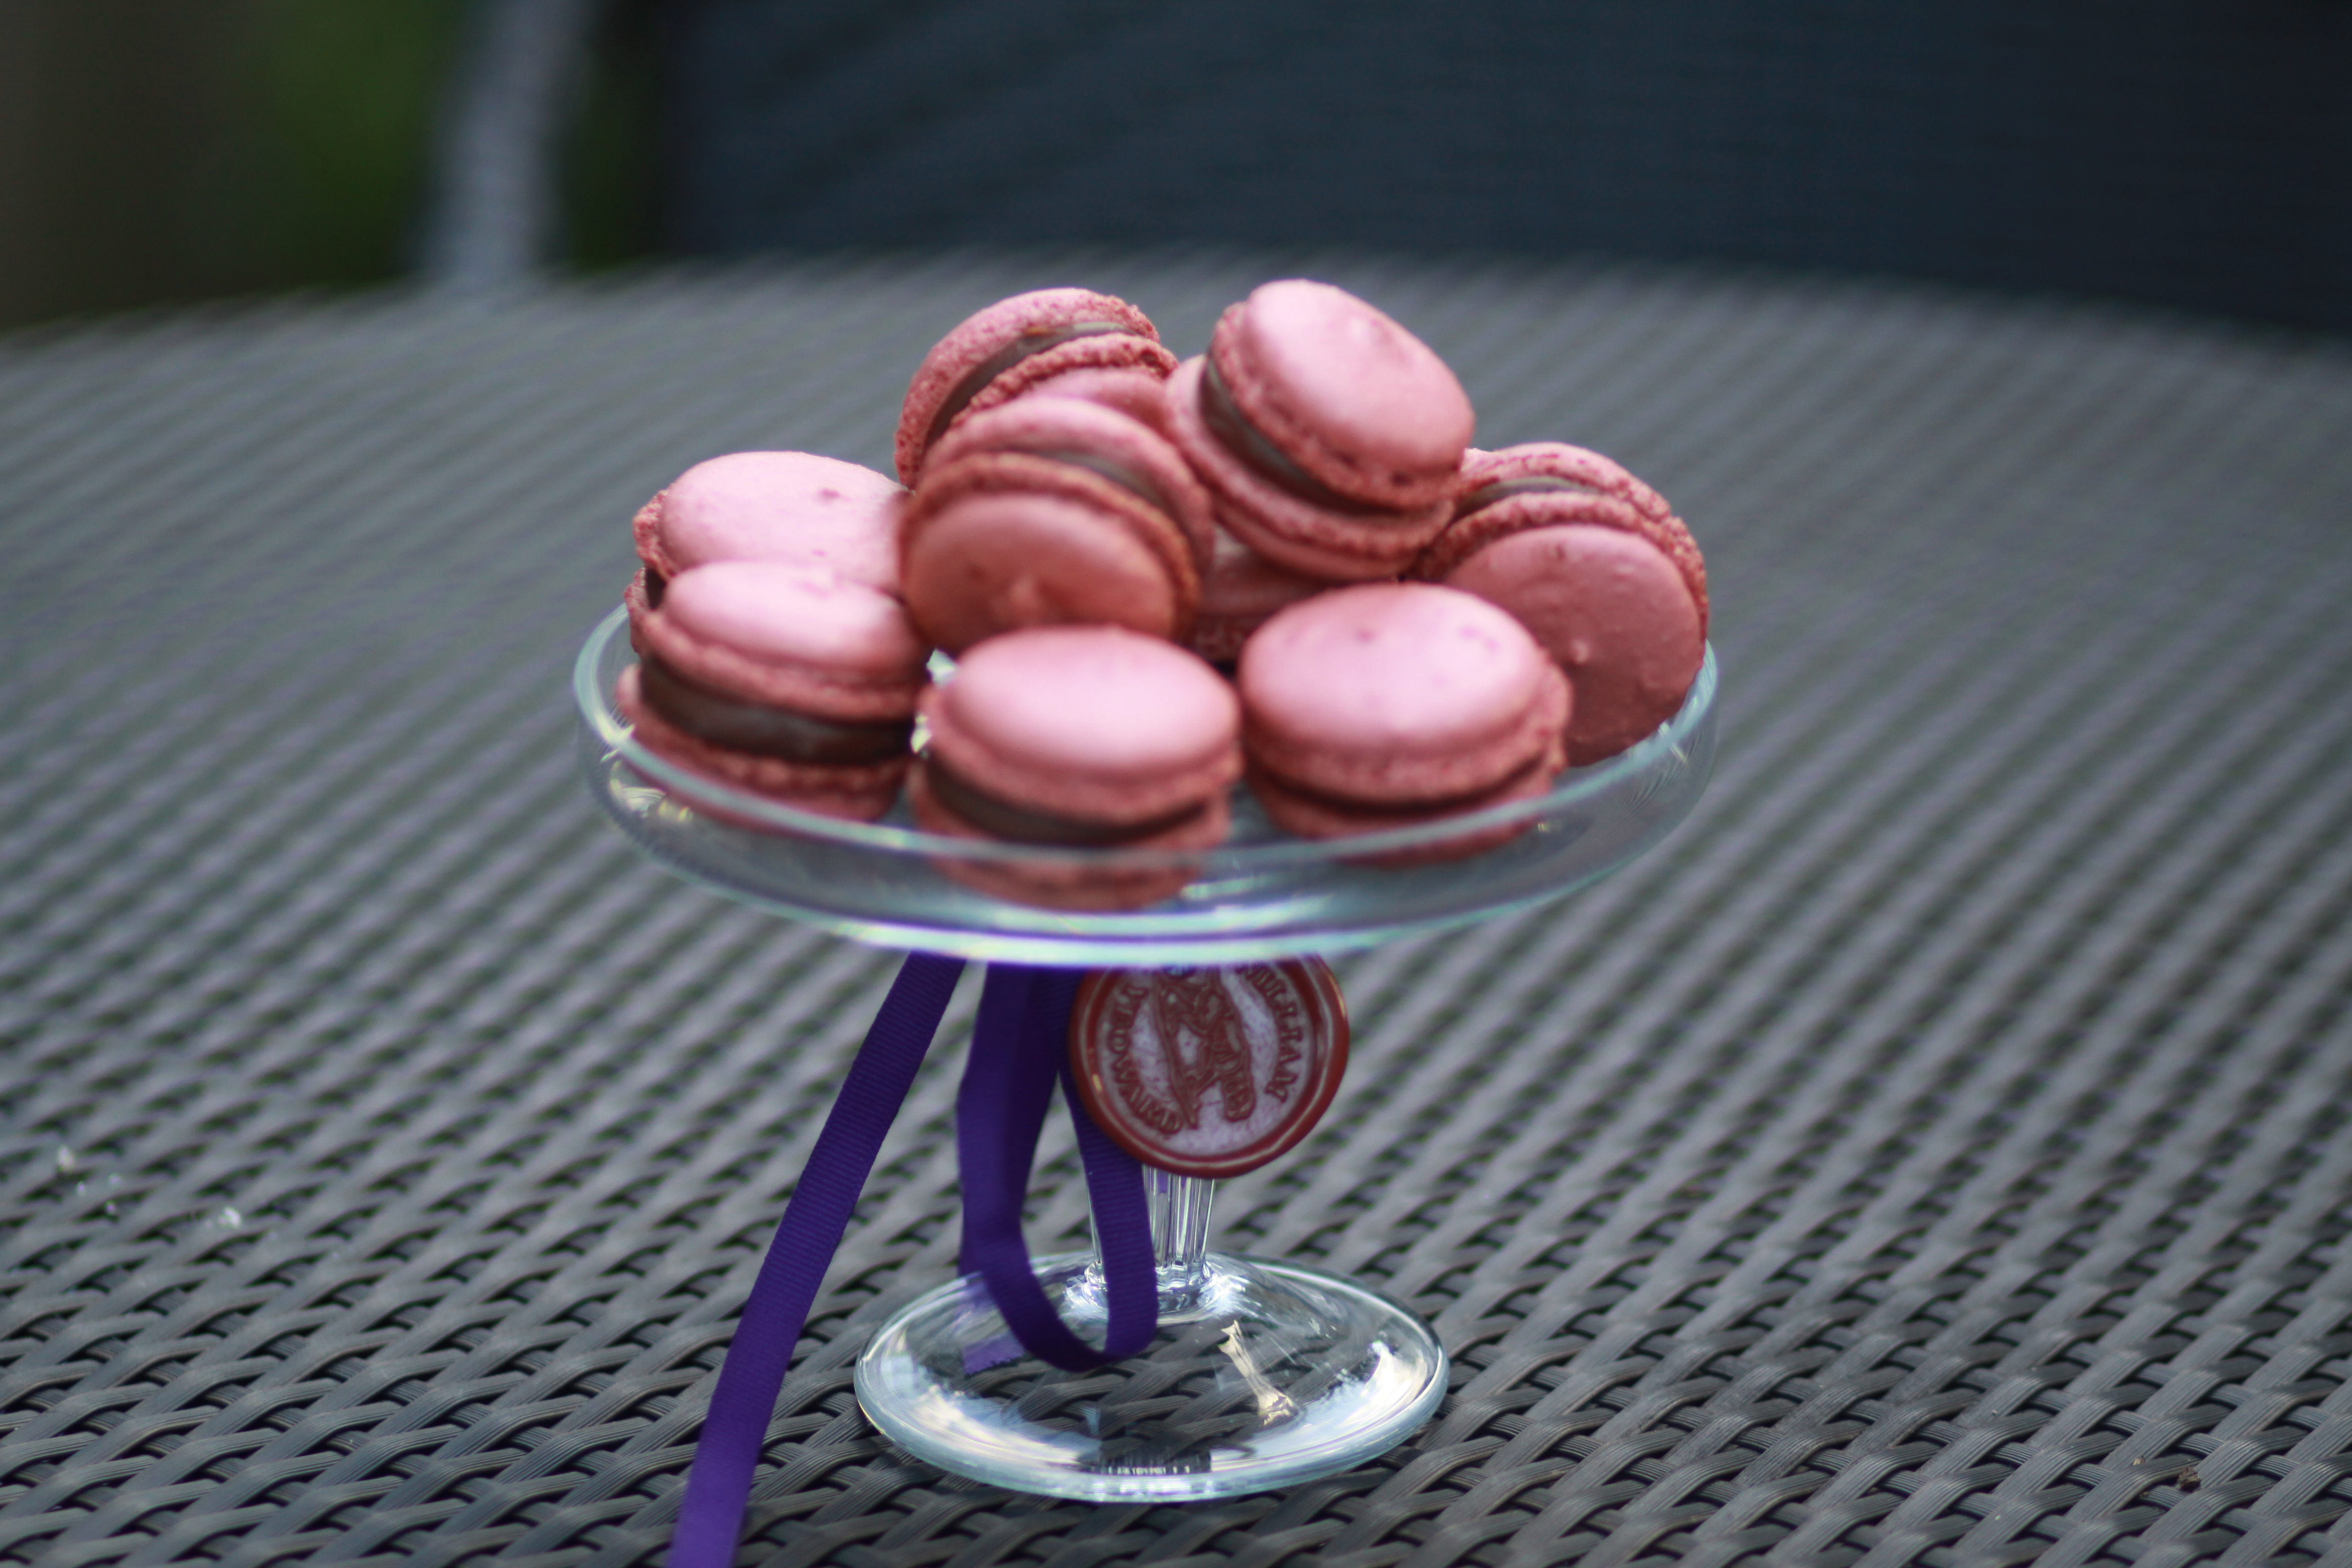 Pierre Herme Chocolate French Macarons recipe - baked by Victoria